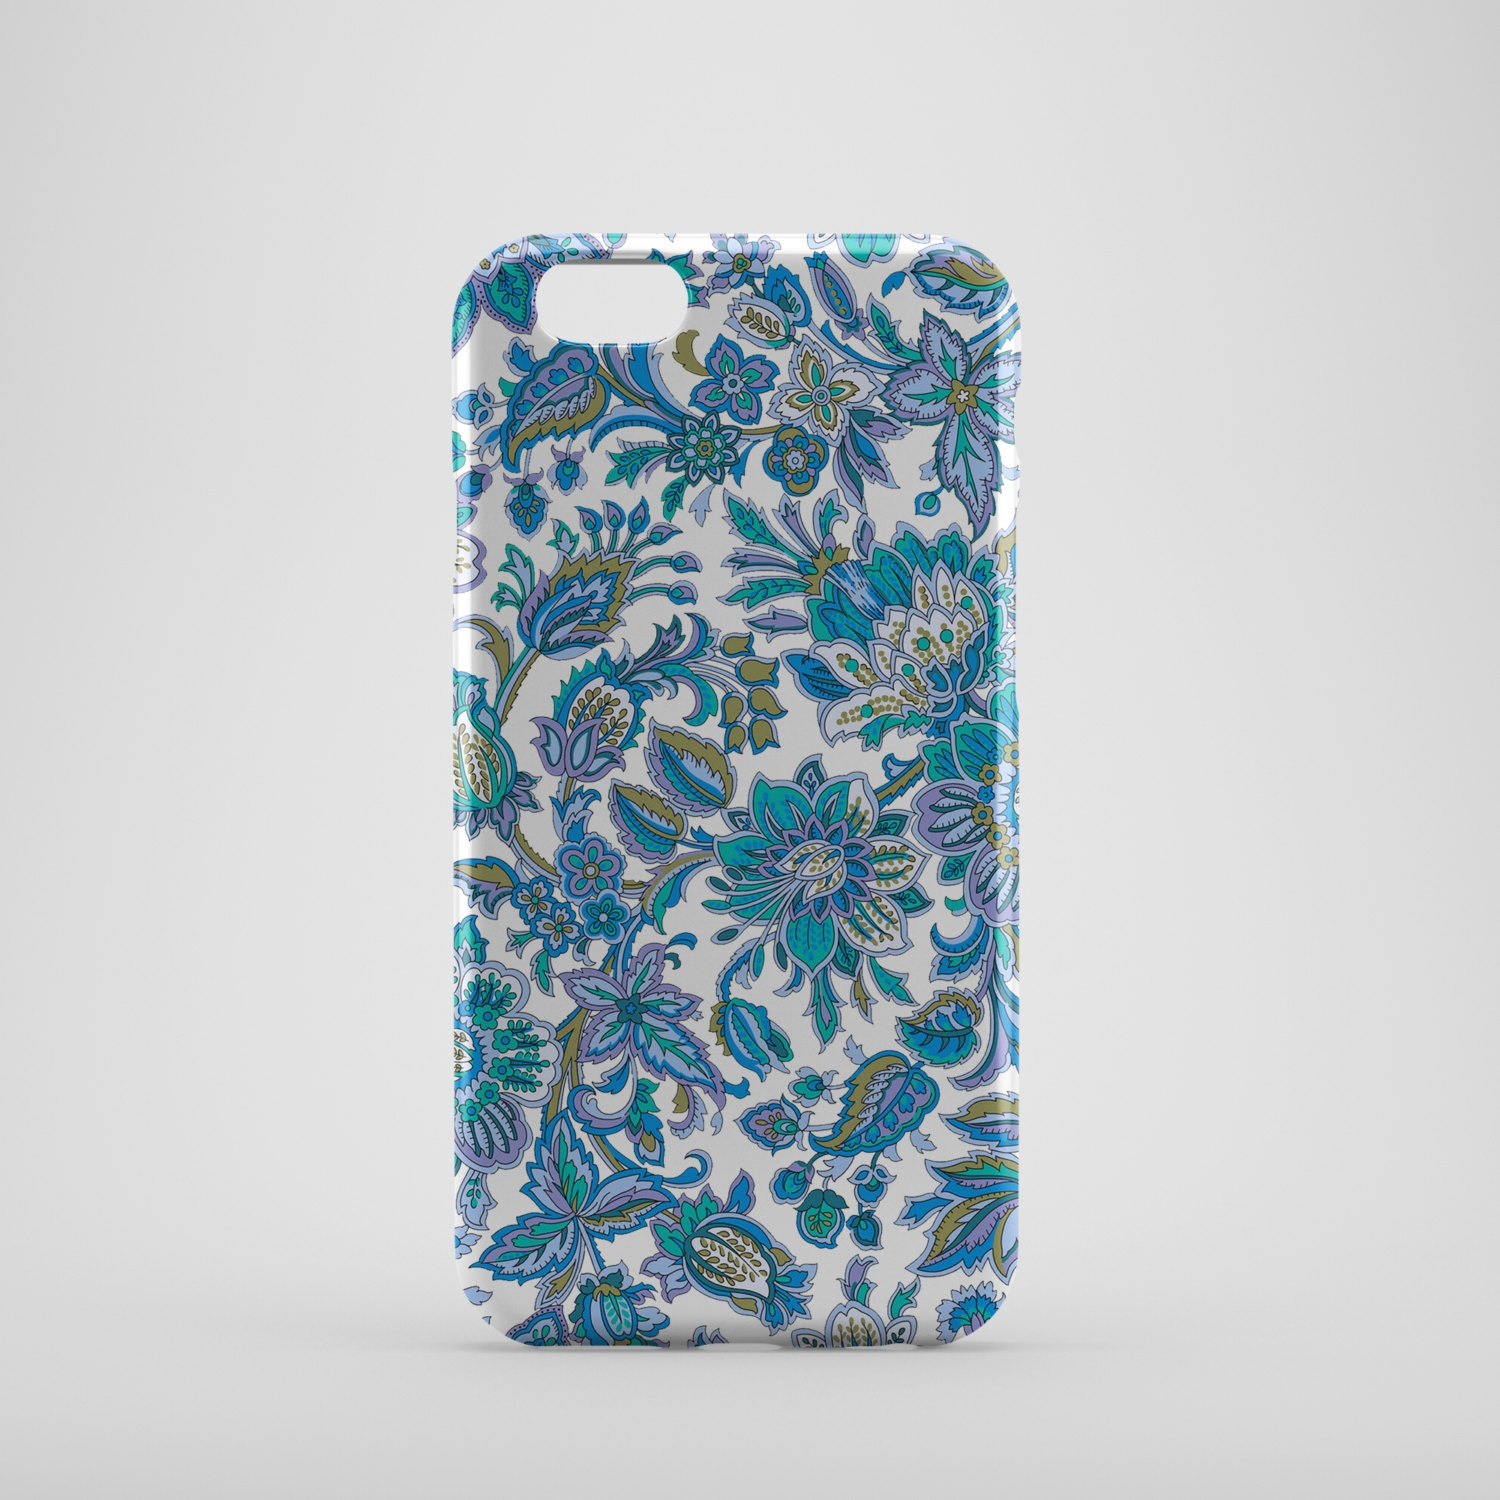 Abstract Floral iPhone Case iPhone 6 Case iPhone 6s Case iPhone 6 Plus Case iPhone 5C Case iPhone 5 Case iPhone 4 Case SS133b1